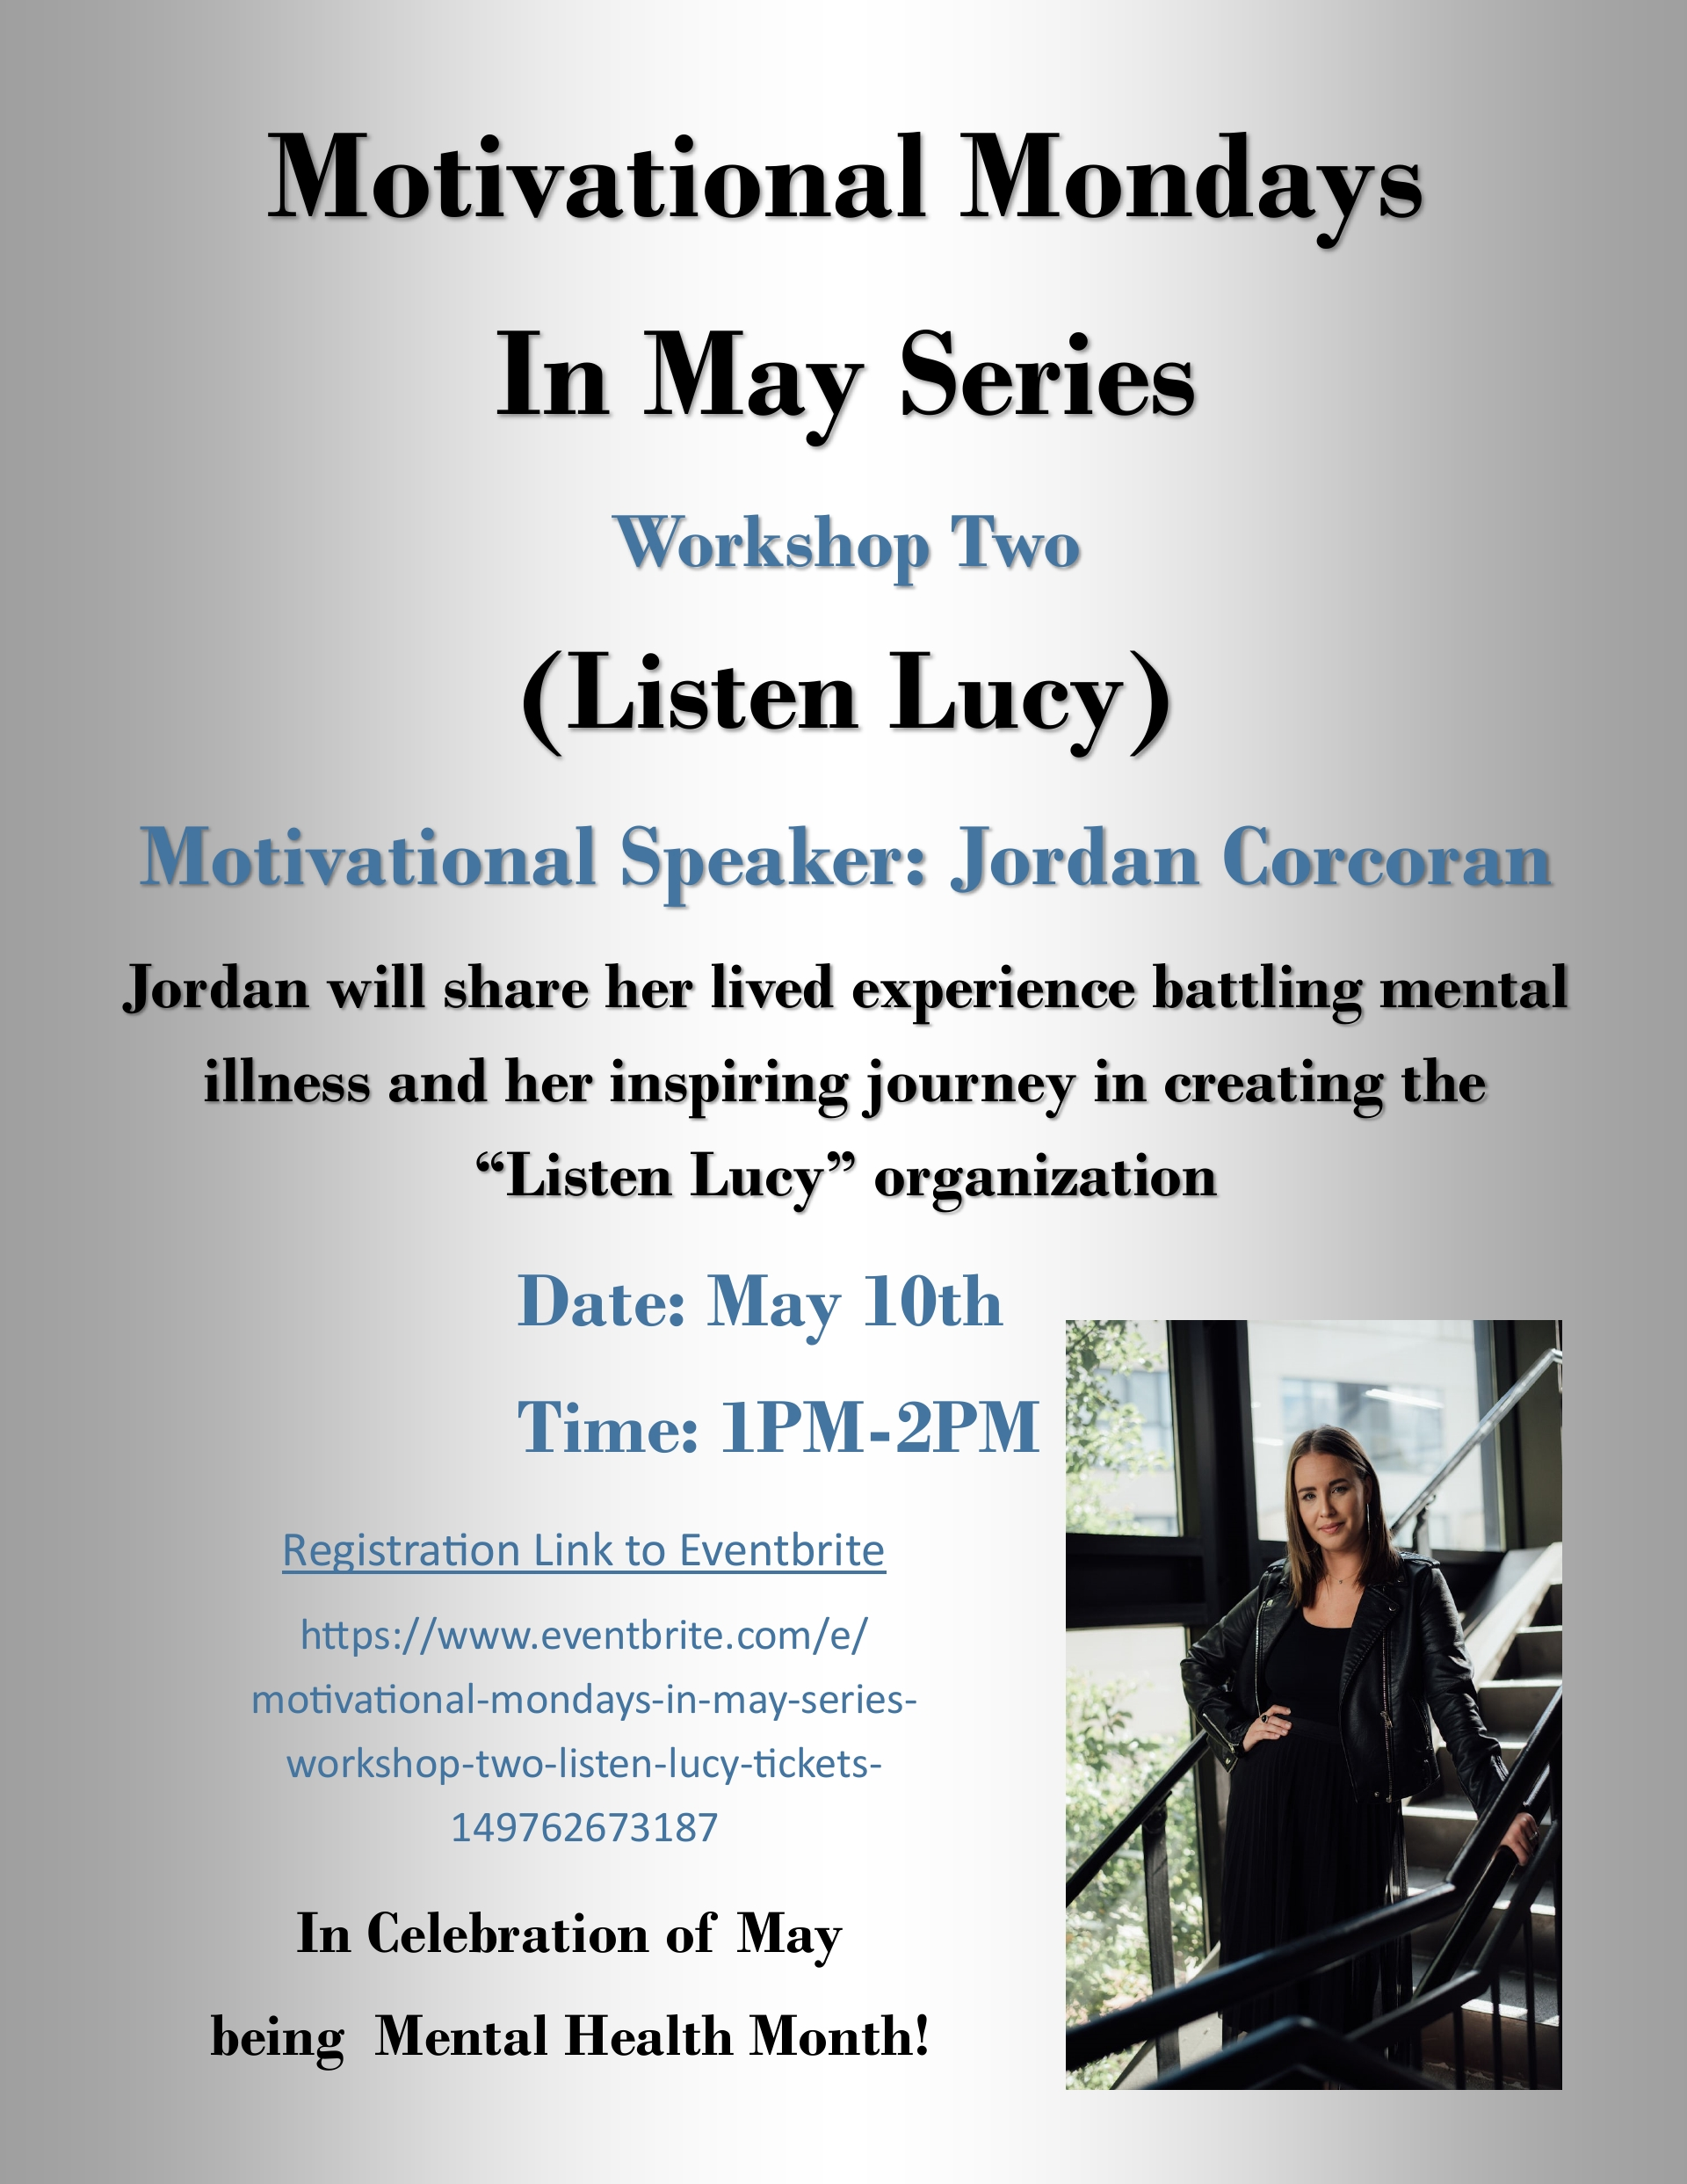 (Listen Lucy) Workshop 2 in the Motivational Monday in May Series!